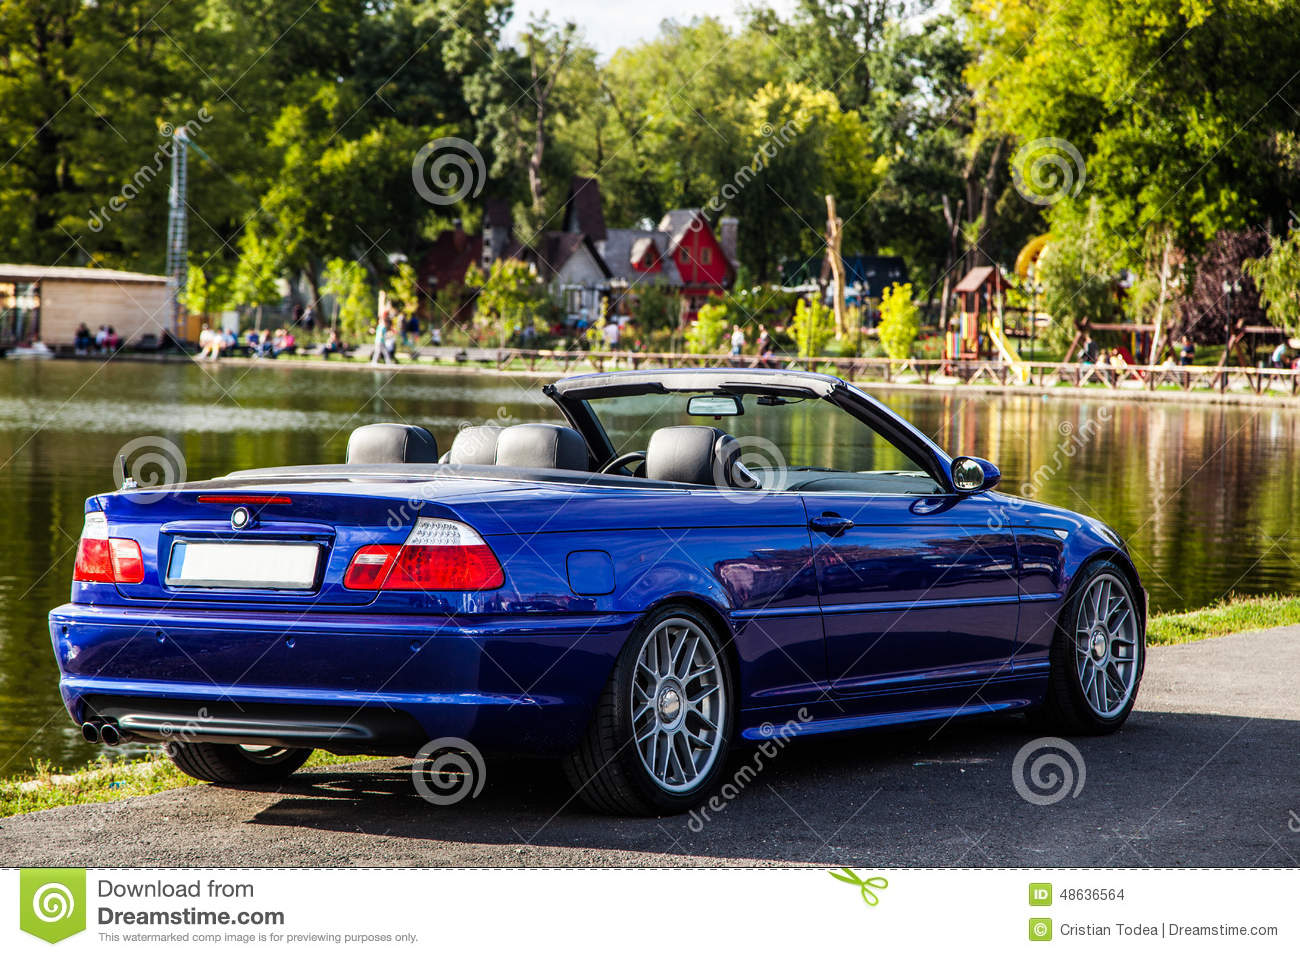 e46 cabrio stock photo image of wheels blue metallic 48636564. Black Bedroom Furniture Sets. Home Design Ideas